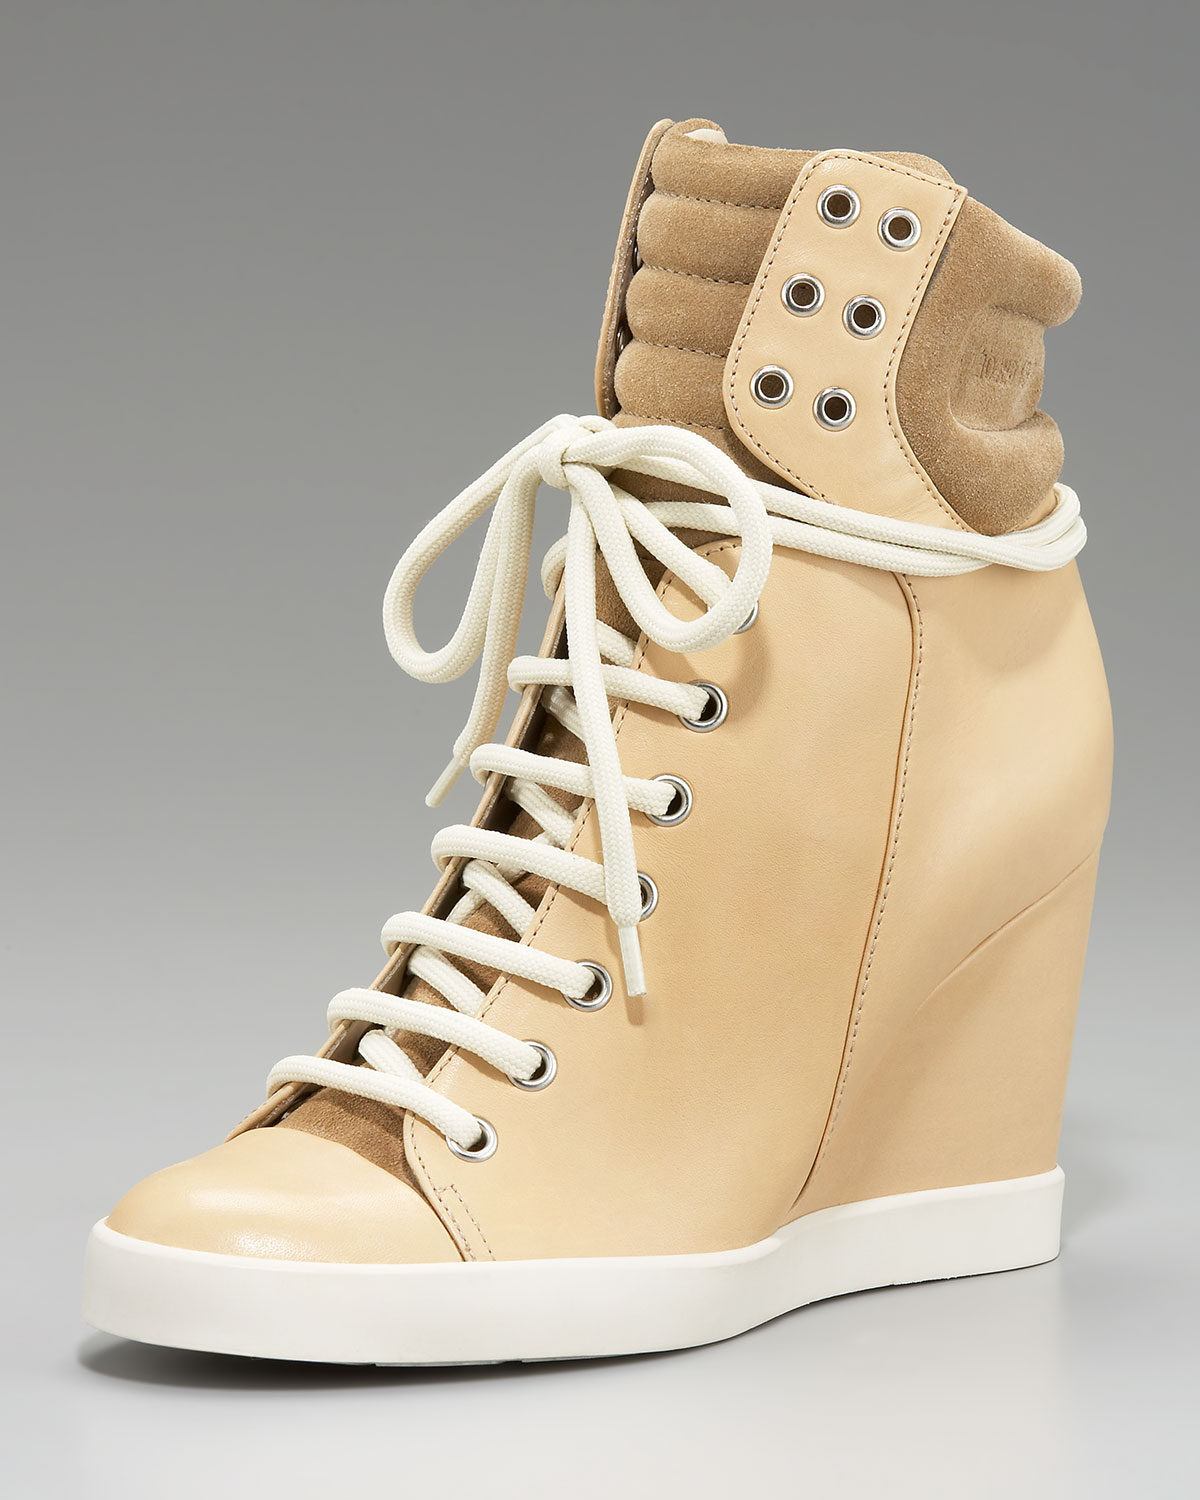 78a0b224355 Lyst - See By Chloé High-top Wedge Sneaker in Natural